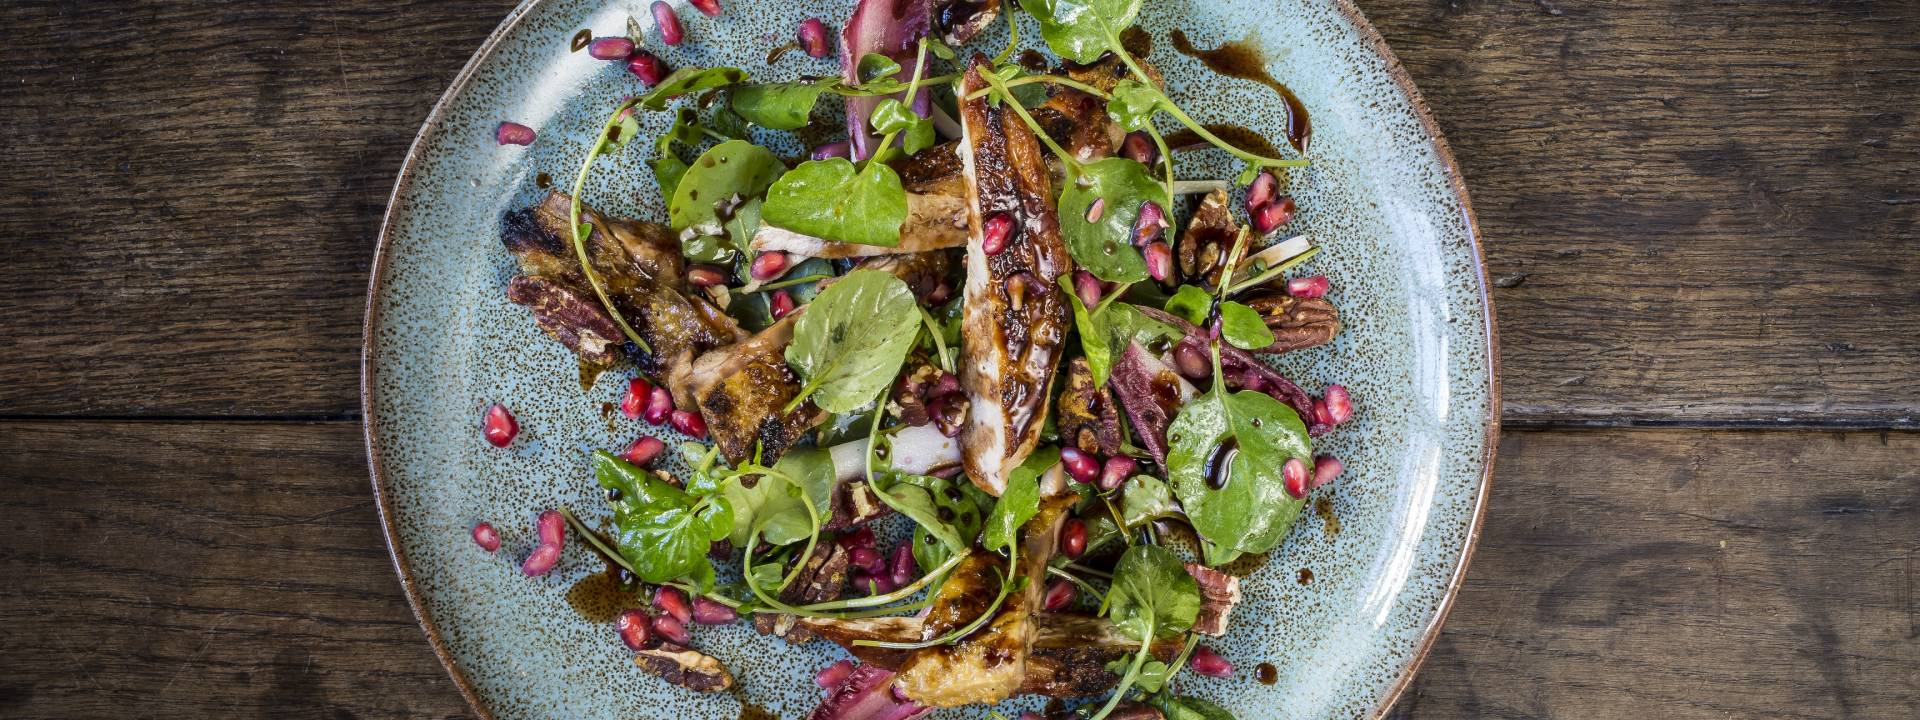 Grilled pheasant salad pomegranate wet walnuts port dressing 1 web